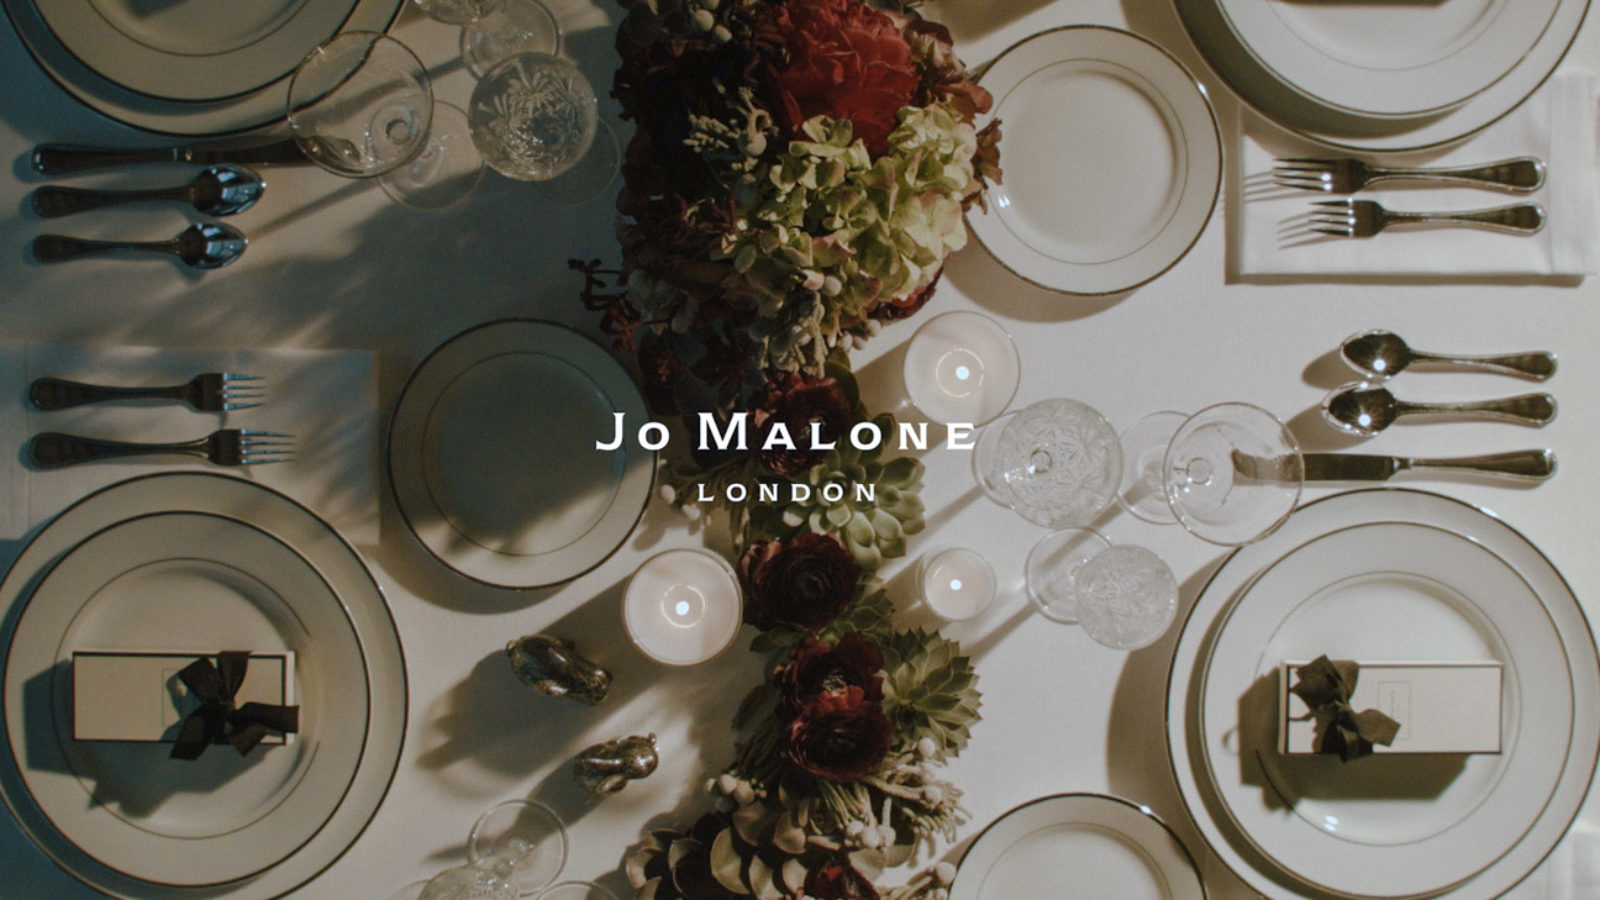 JO MALONE – DINNER PARTY